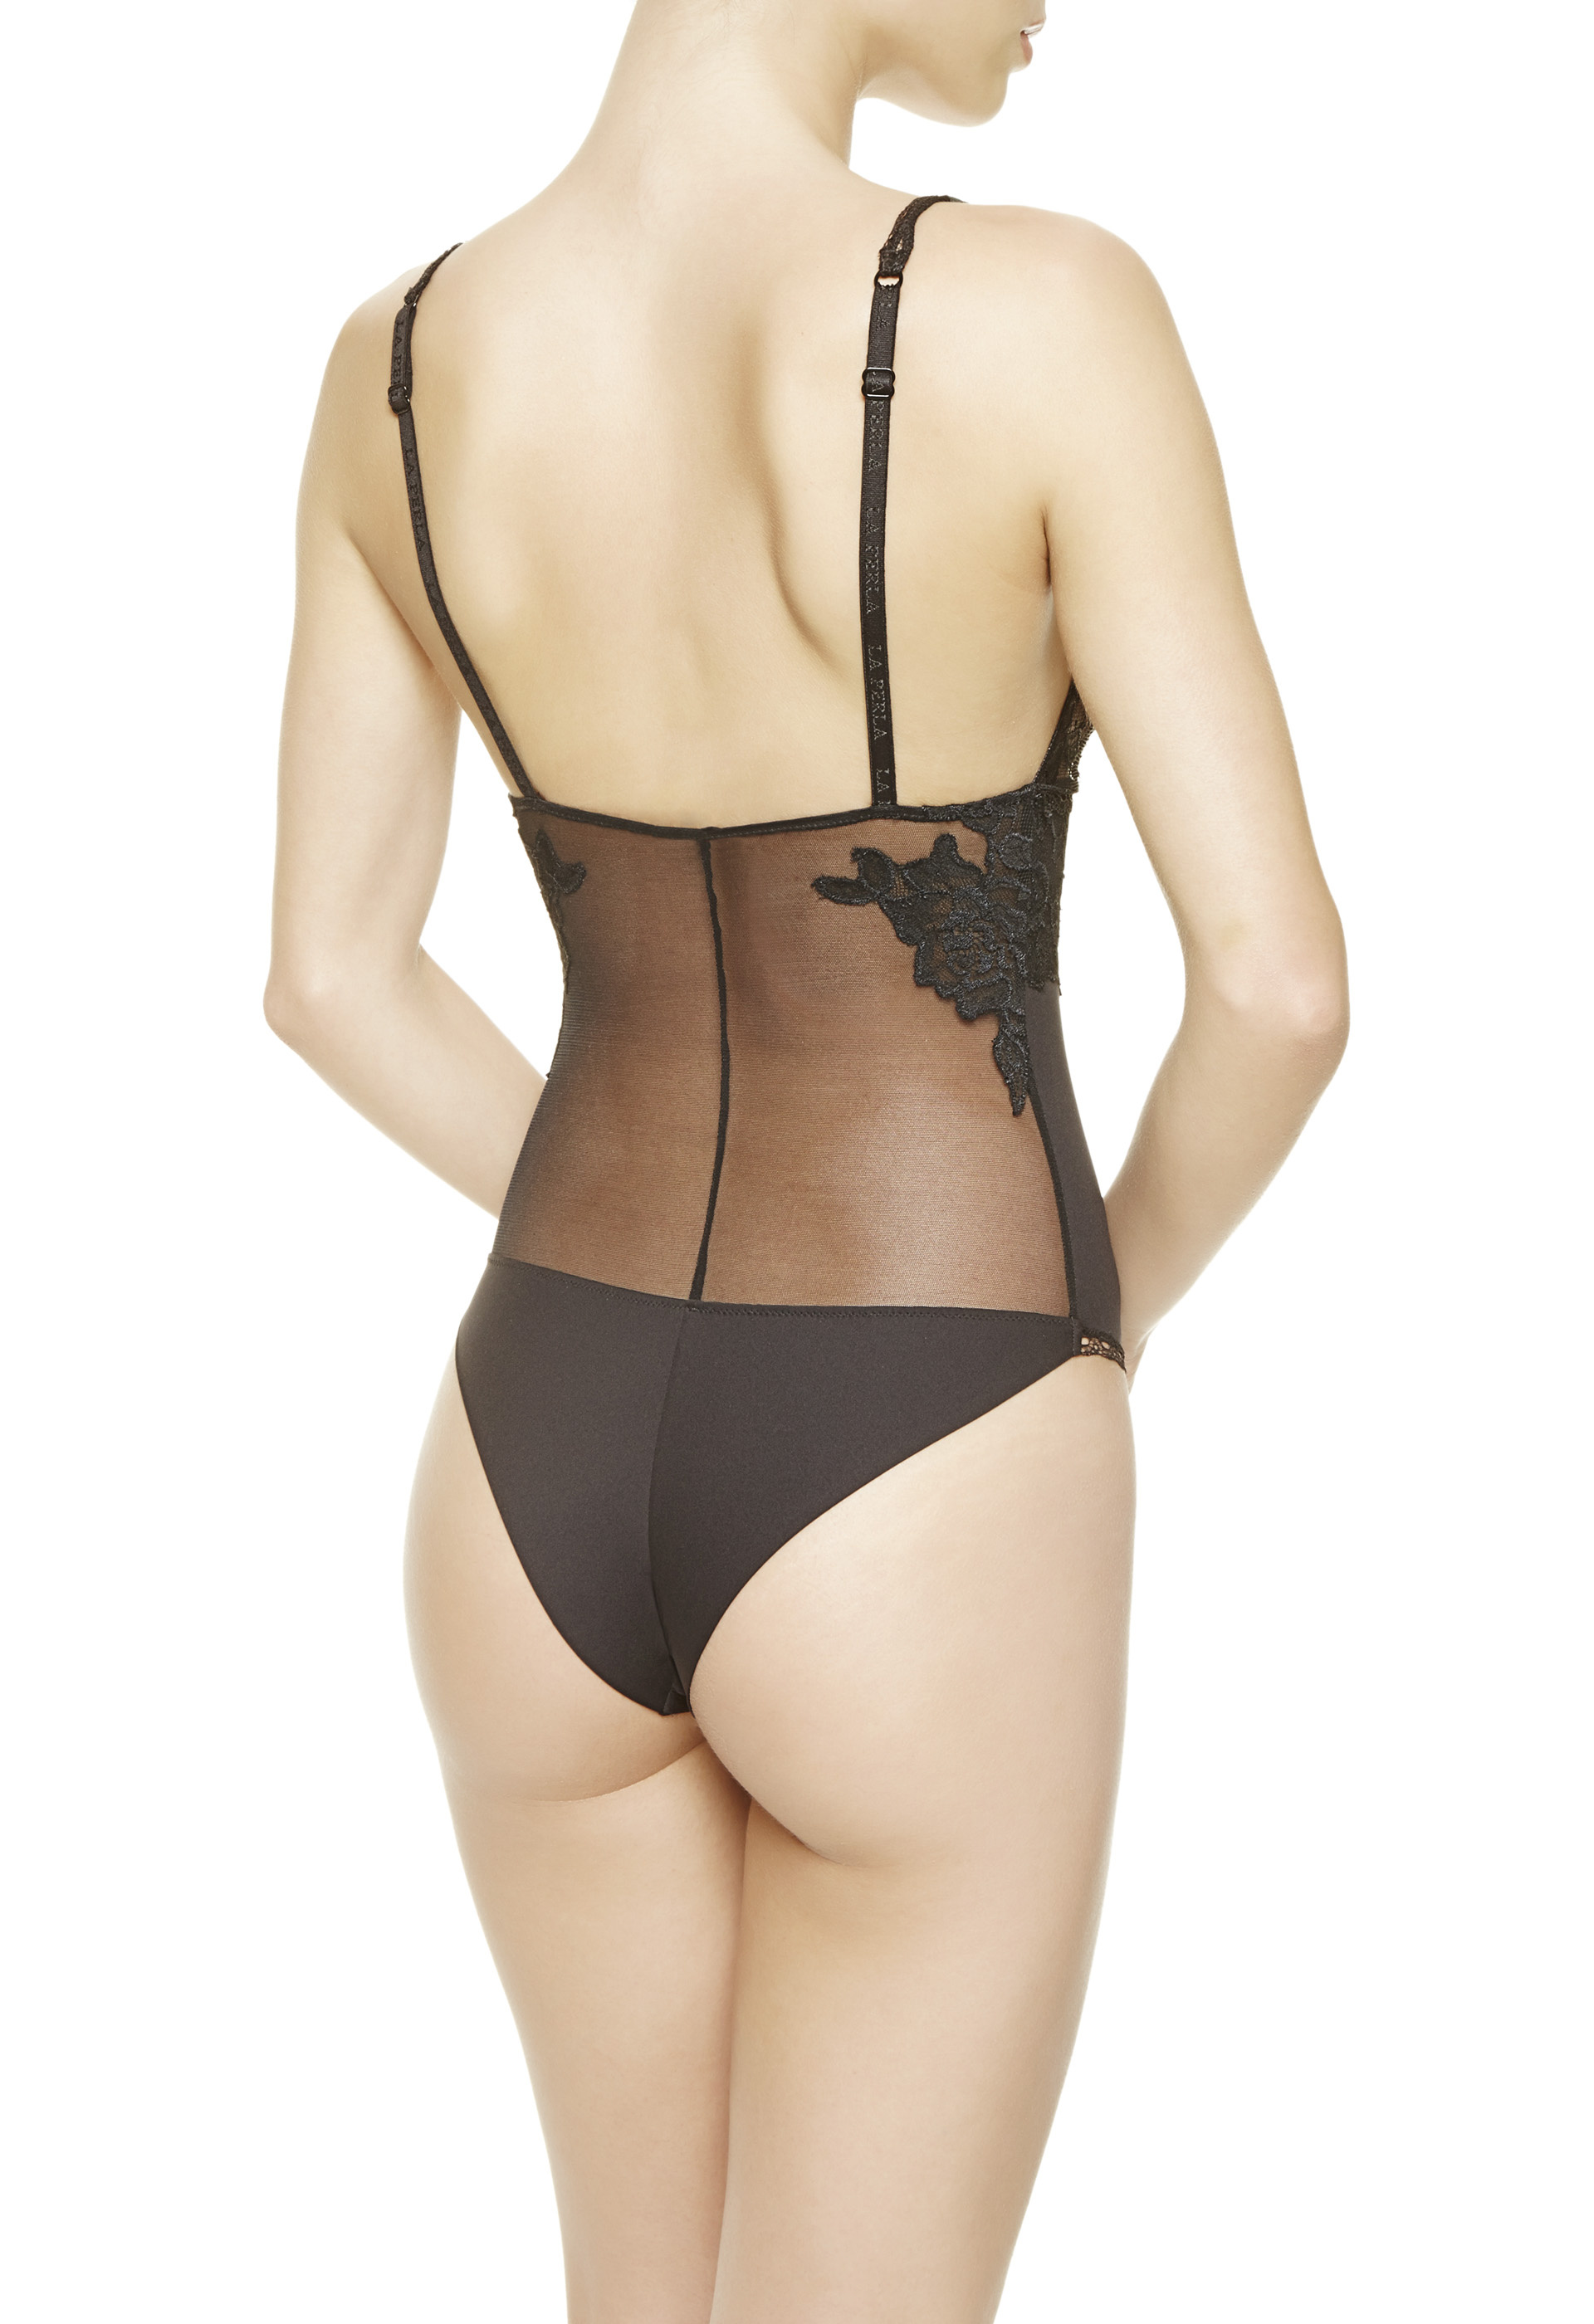 laperla bodysuits 14-11